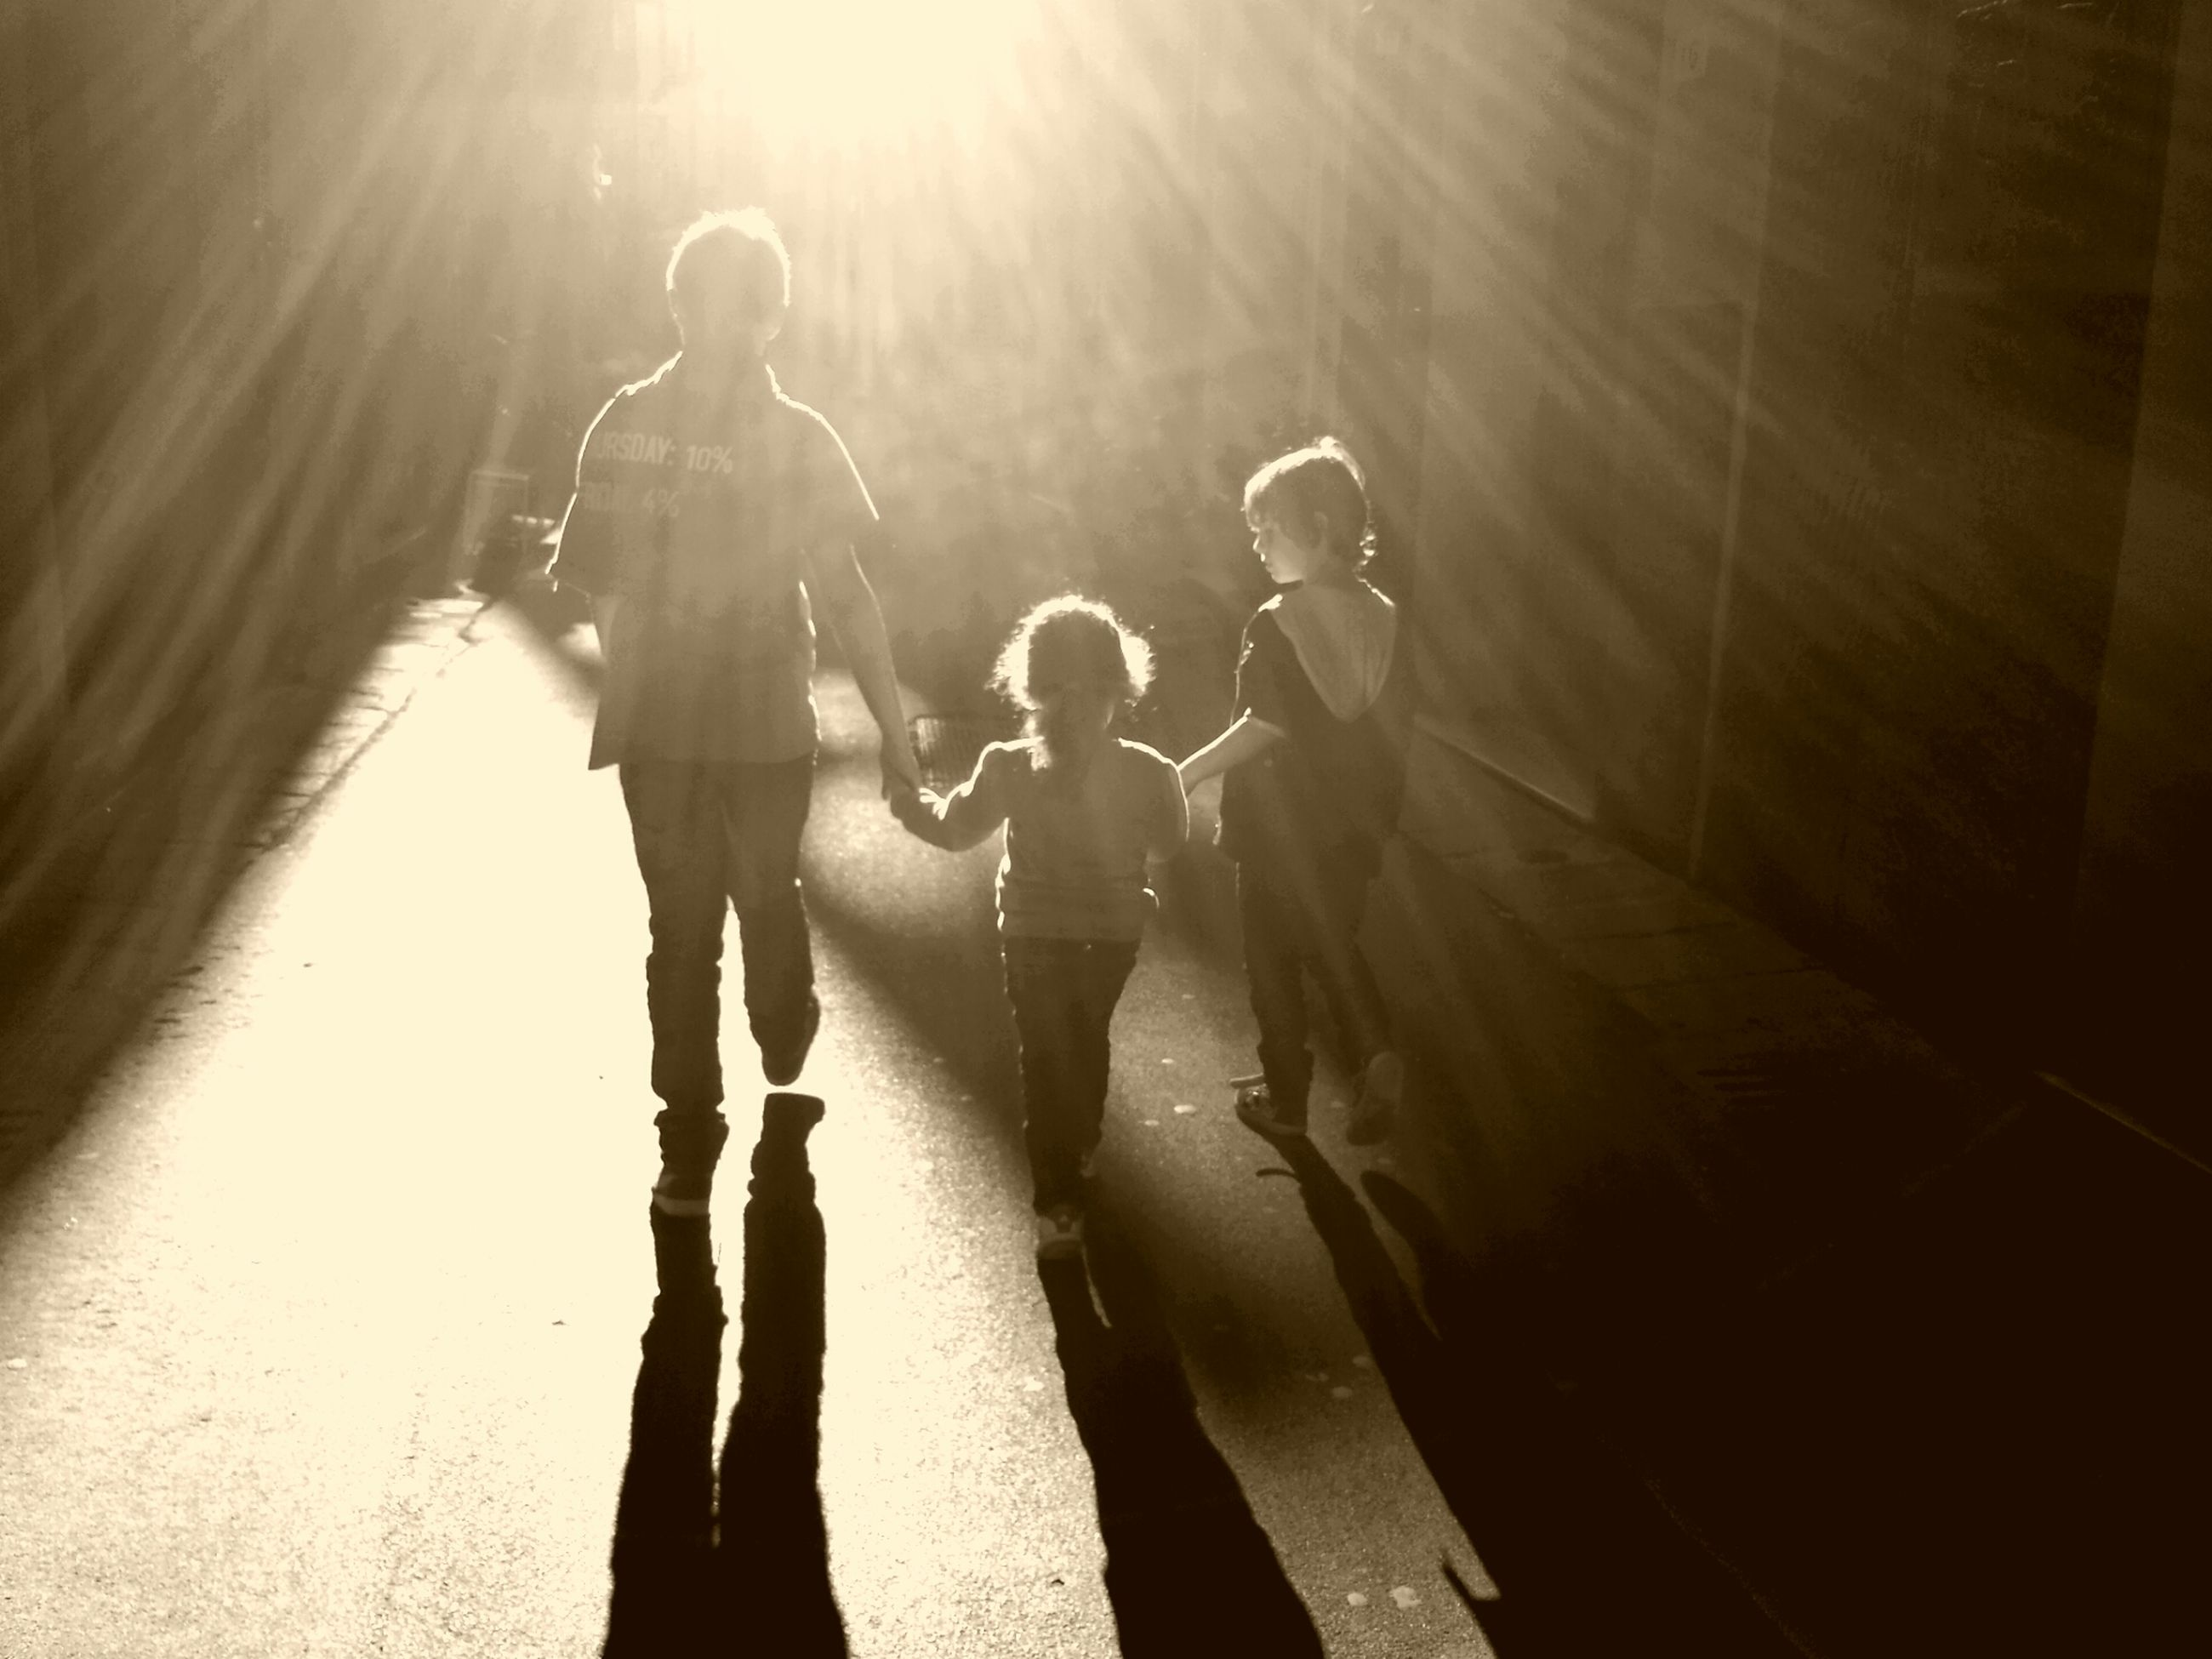 lifestyles, leisure activity, sunlight, standing, men, full length, shadow, person, silhouette, indoors, casual clothing, togetherness, three quarter length, walking, sunbeam, rear view, wall - building feature